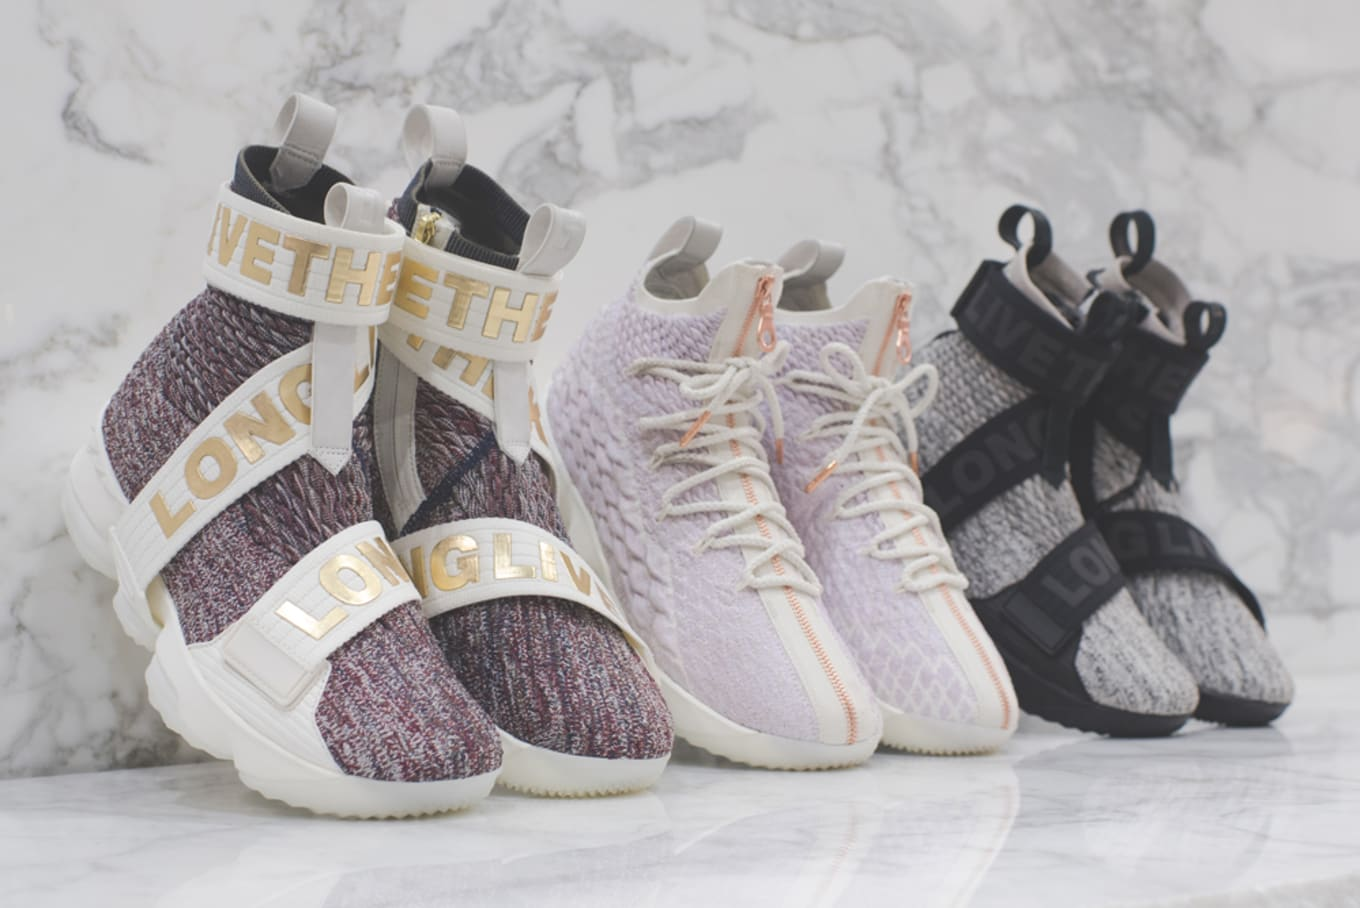 new concept d9a66 60613 Kith Nike LeBron 15 Long Live the King Release Date   Sole ...